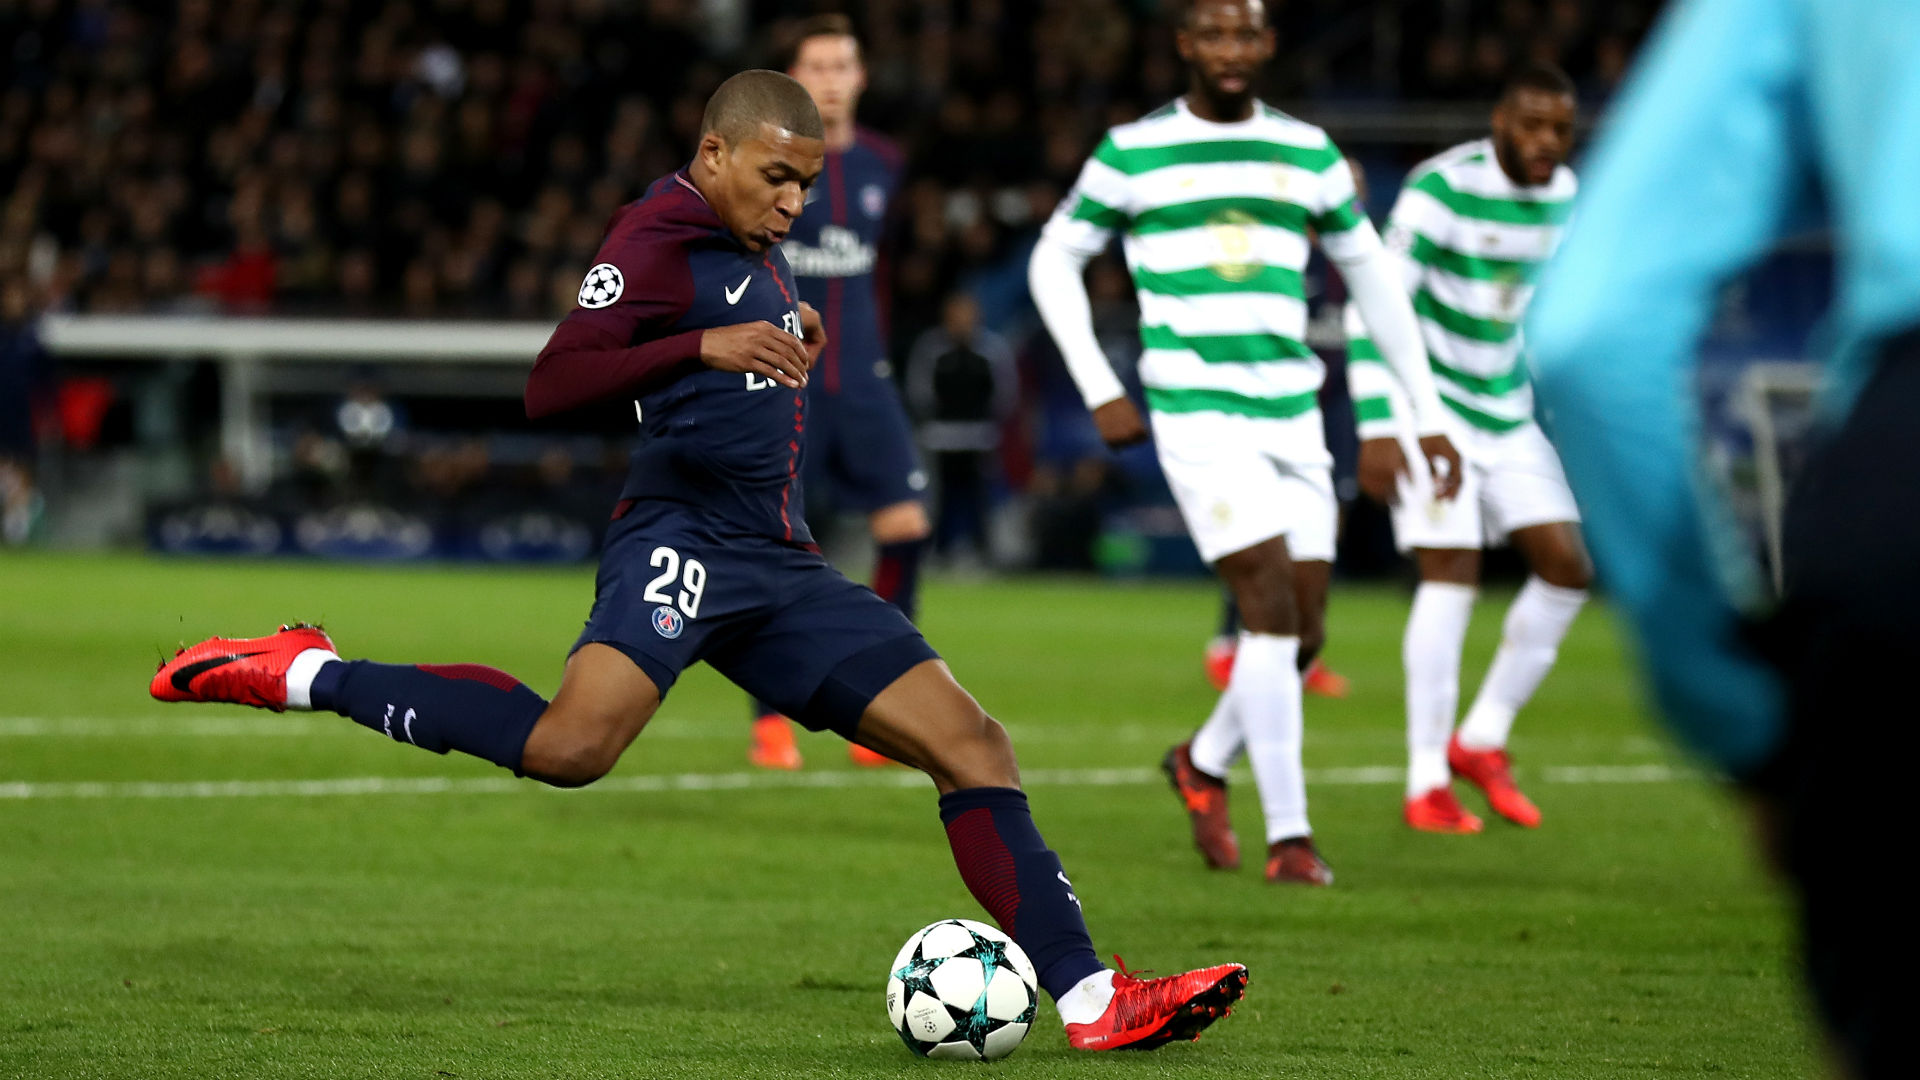 Neymar and Cavani bound by common goal at PSG